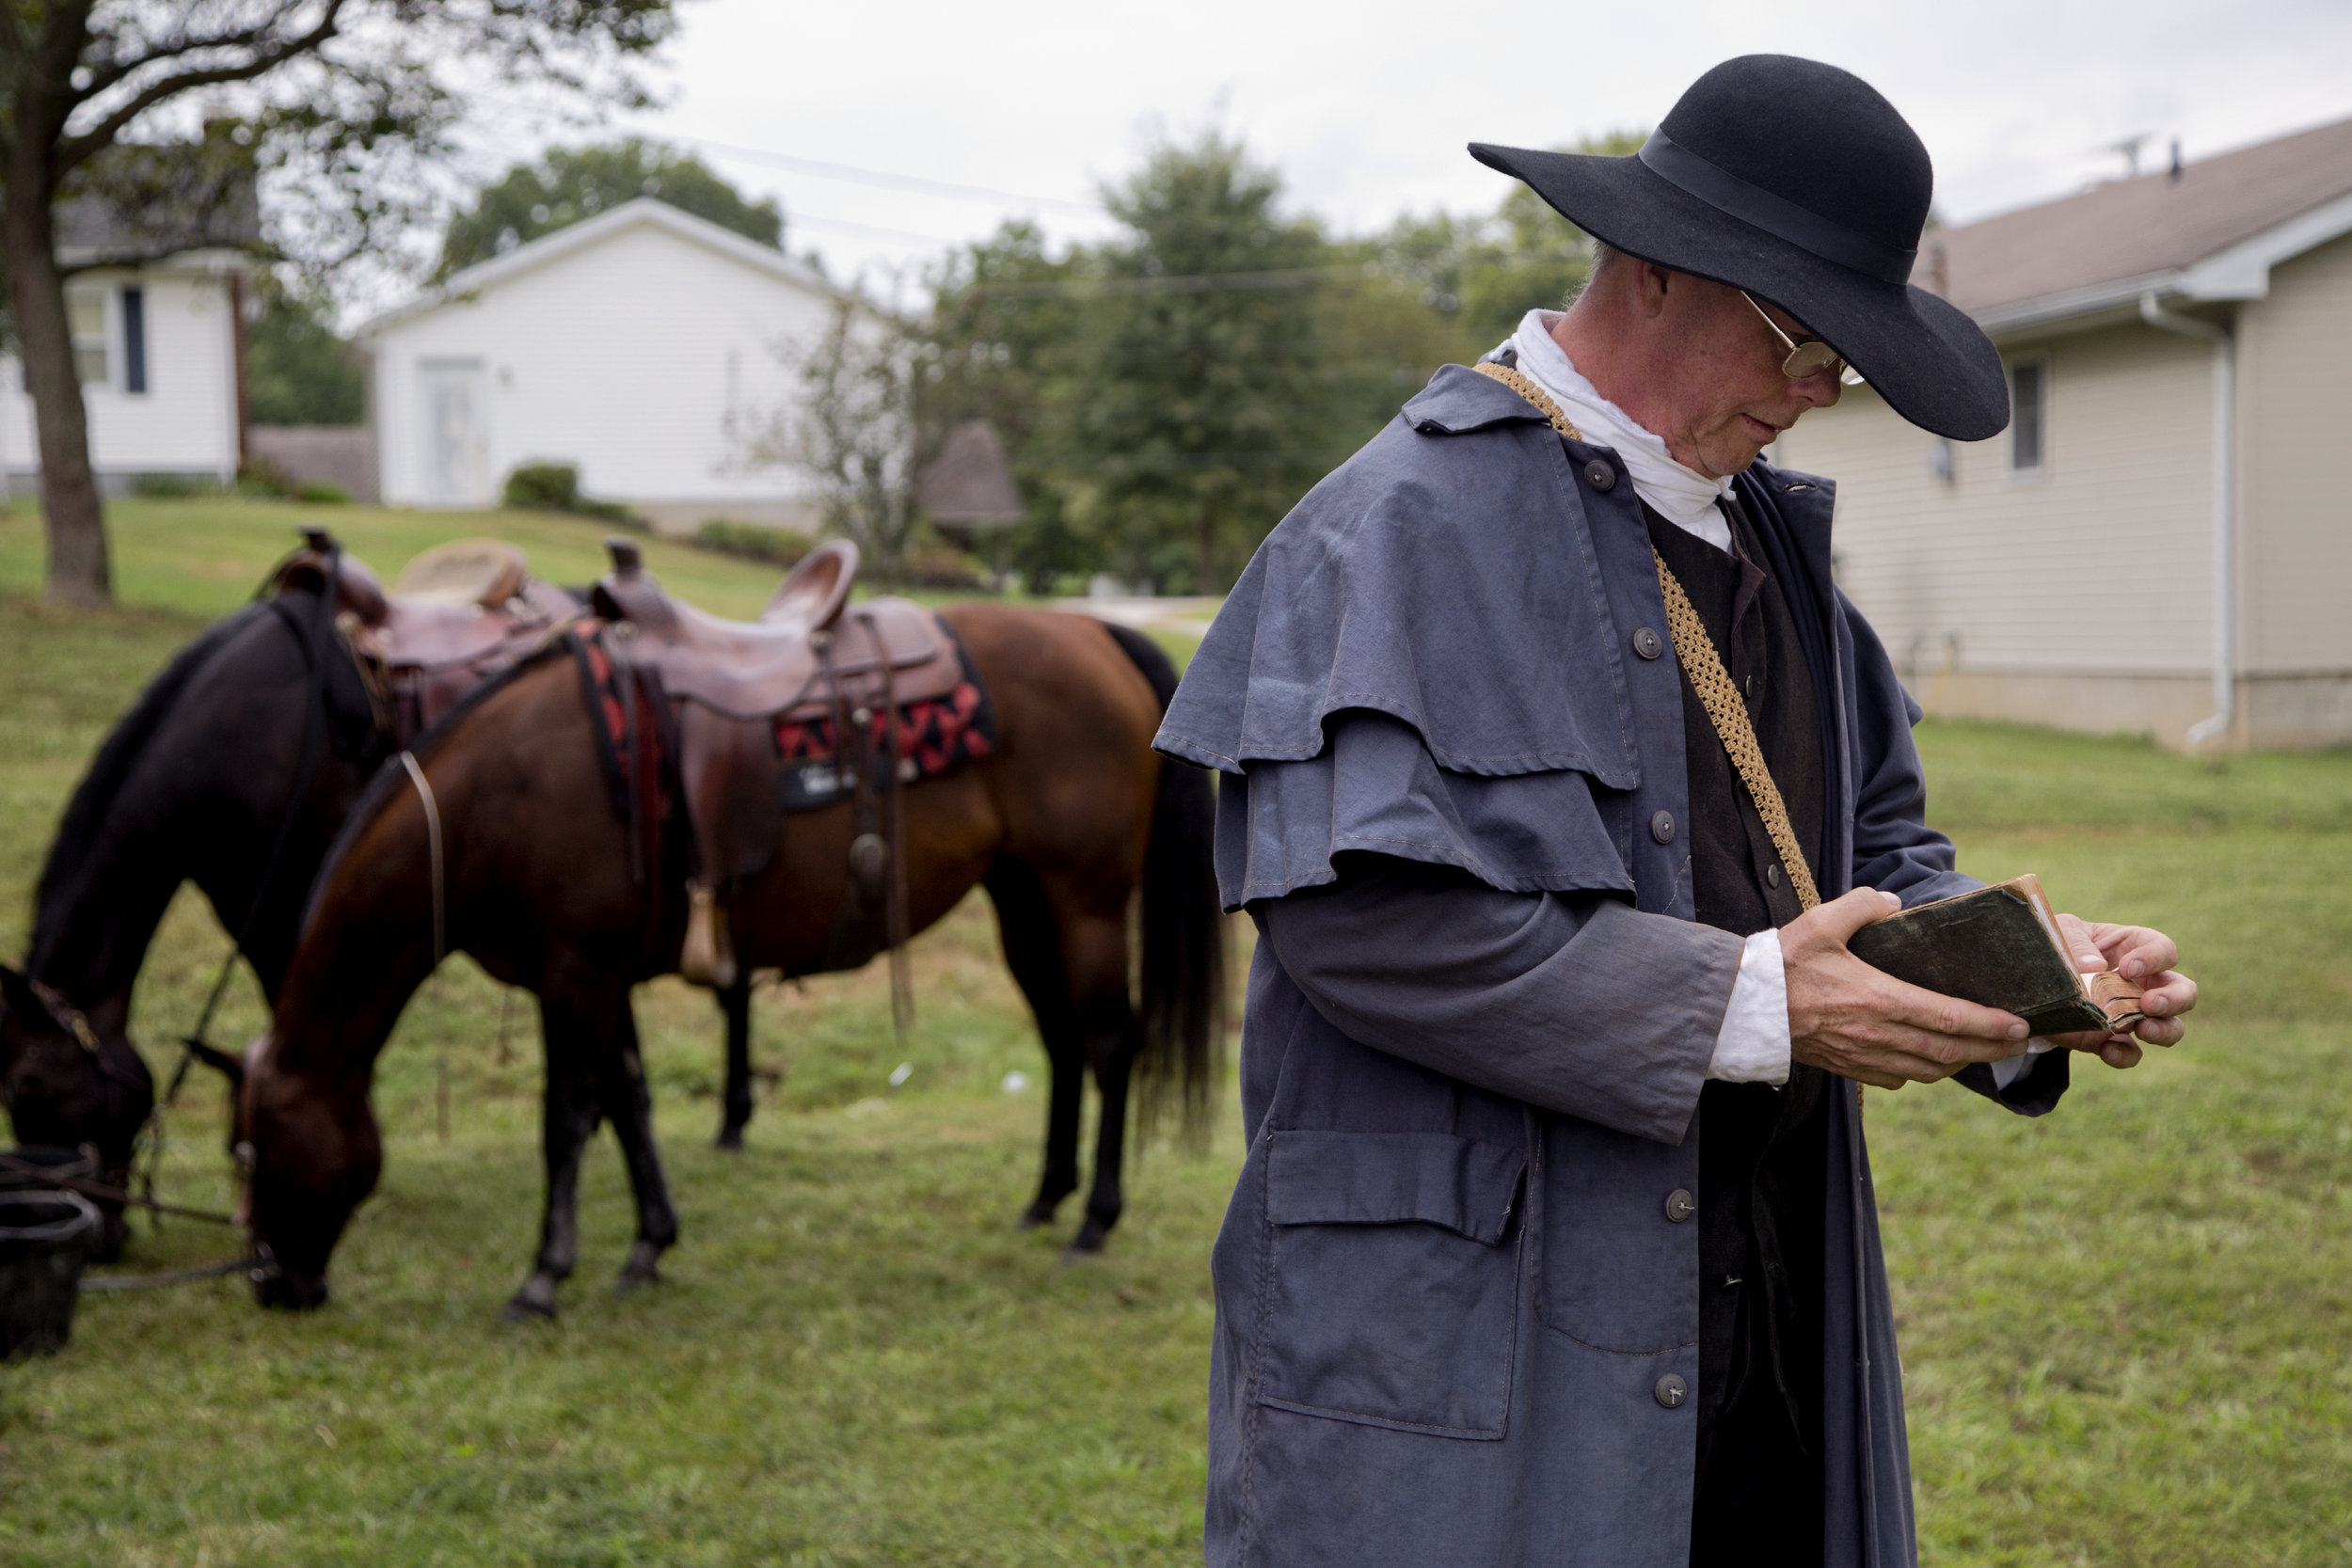 Mike Mulligan of Waxhaw, N.C., thumbed through his bible before preaching at the Cowboys for Christ event at Christ Community Fellowship Church in Huntingburg on Saturday. Mulligan and Calvin Barfield of Conway, S.C., travelled to Huntingburg with their horses, Honey and Sassy, to give rides to kids and preach about Jesus.